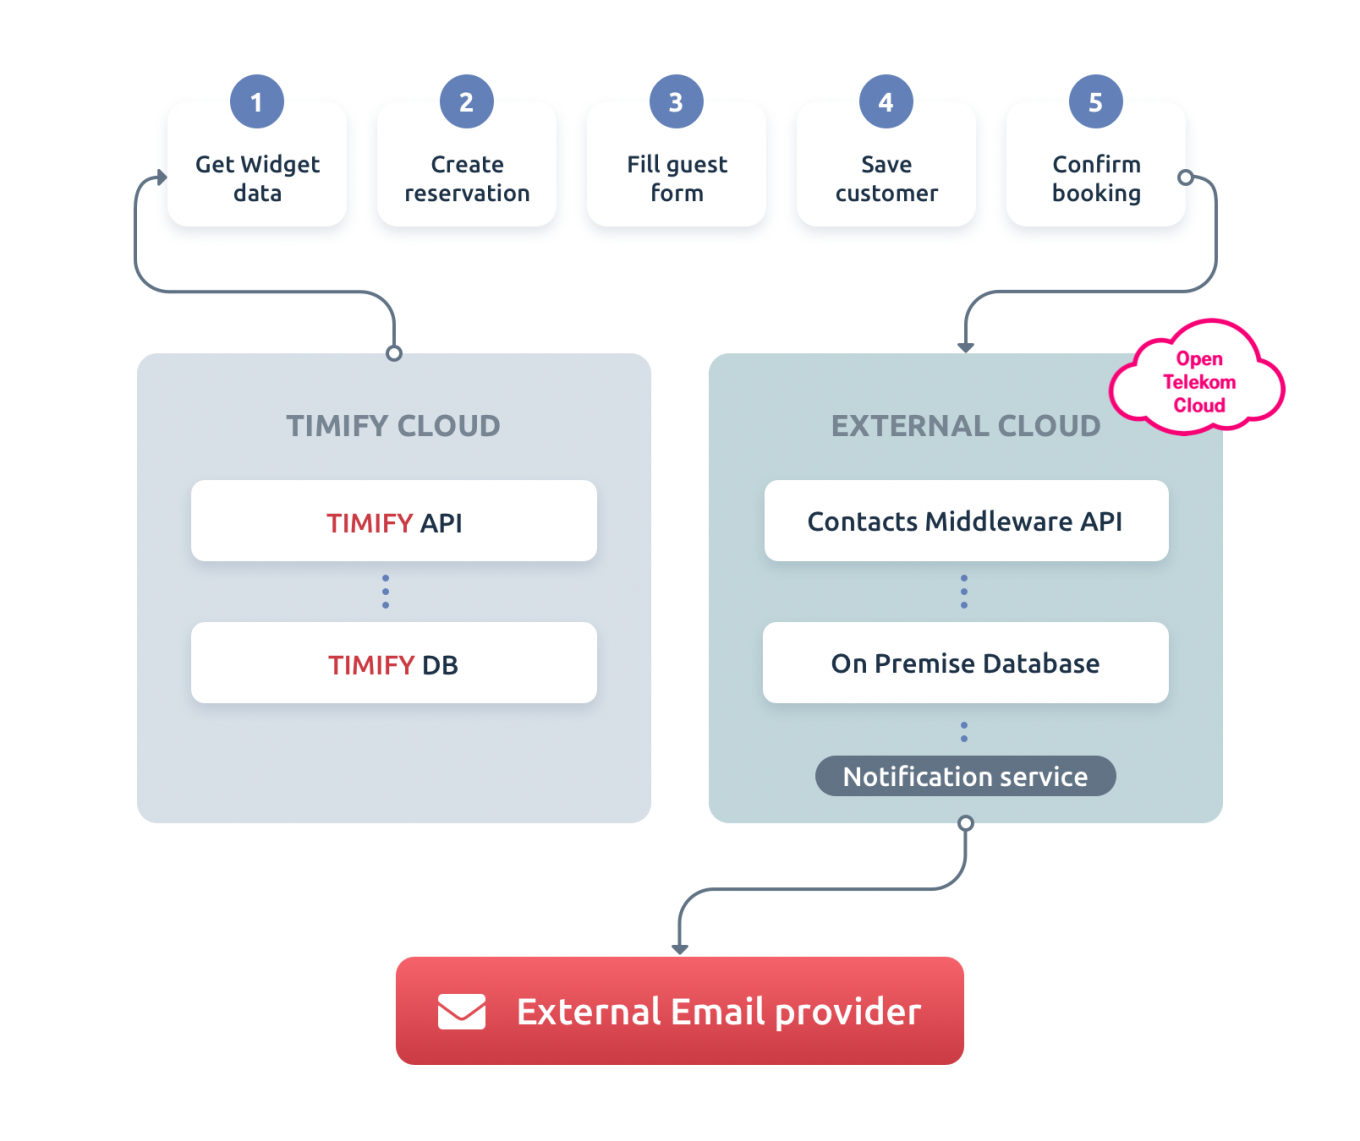 Contacts Middleware